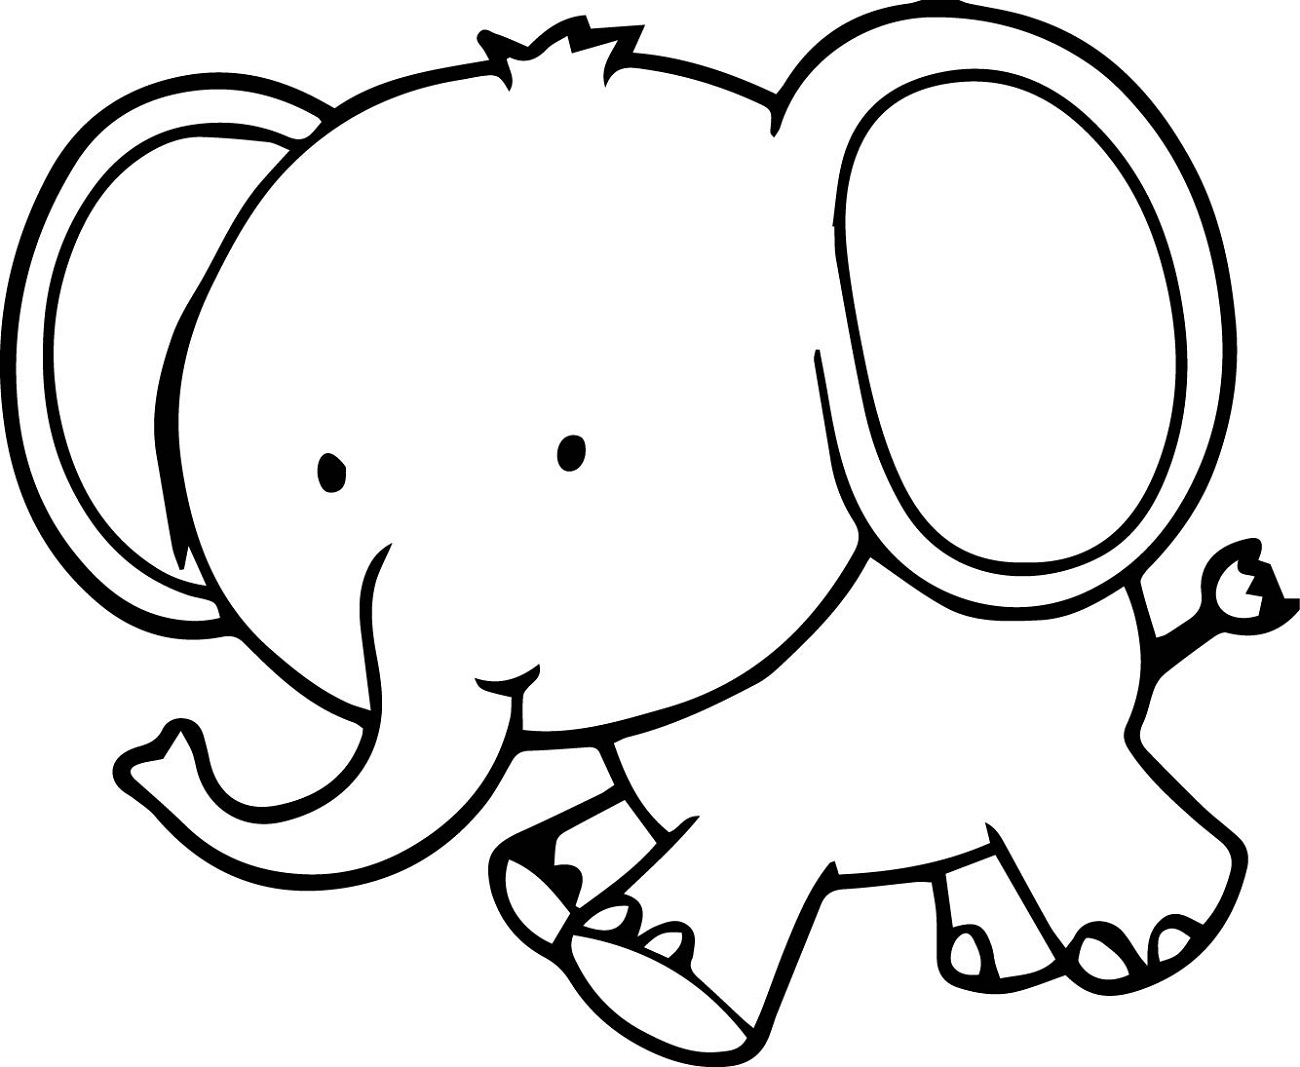 elephant picture for coloring elephant coloring pages for kids preschool and coloring picture elephant for